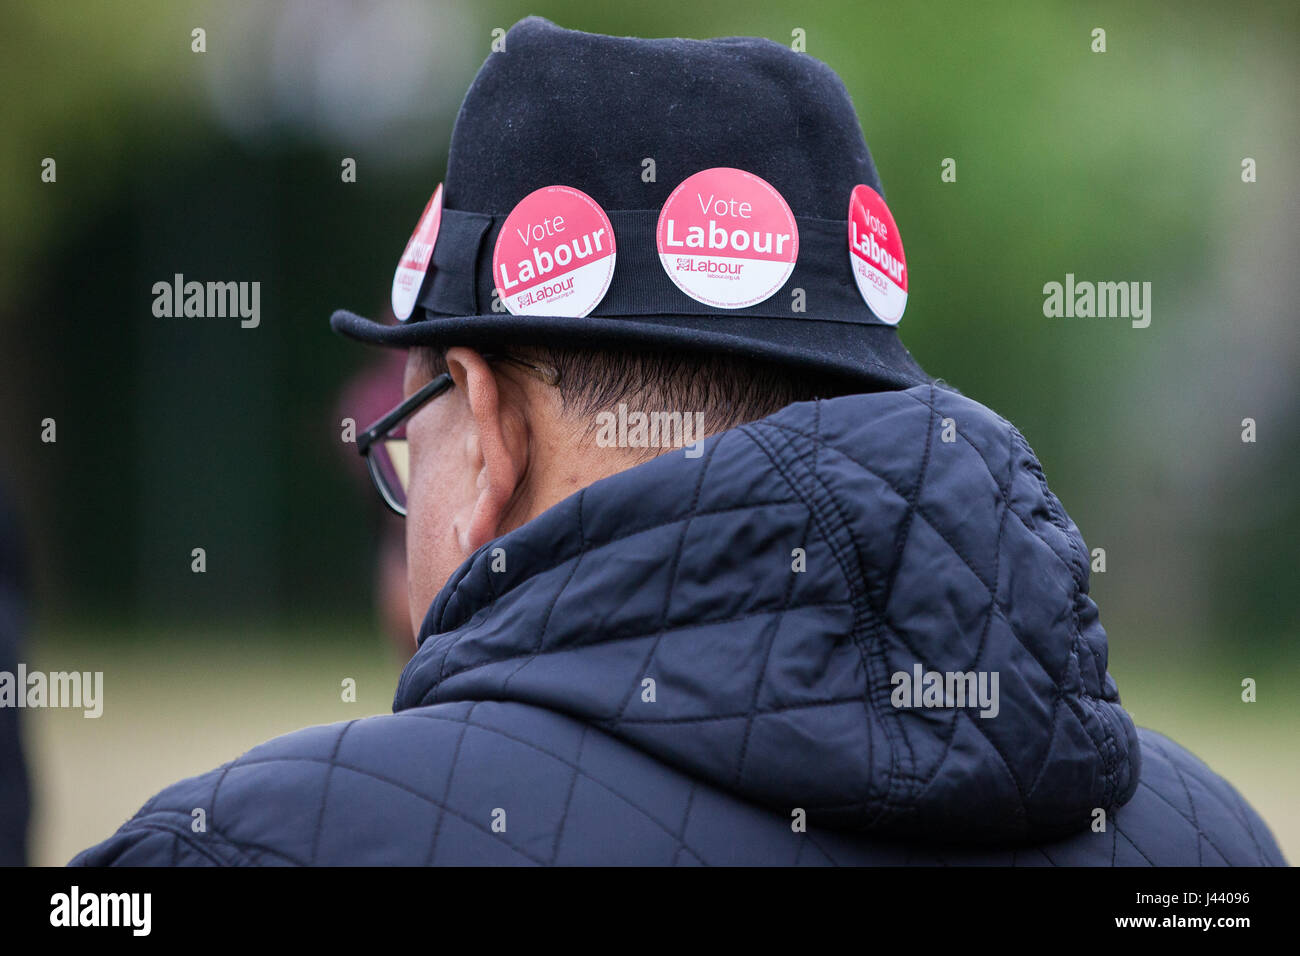 London, UK. 9th May, 2017. A Labour Party supporter campaigns in South Harrow for Gareth Thomas, Labour and Co-operative - Stock Image